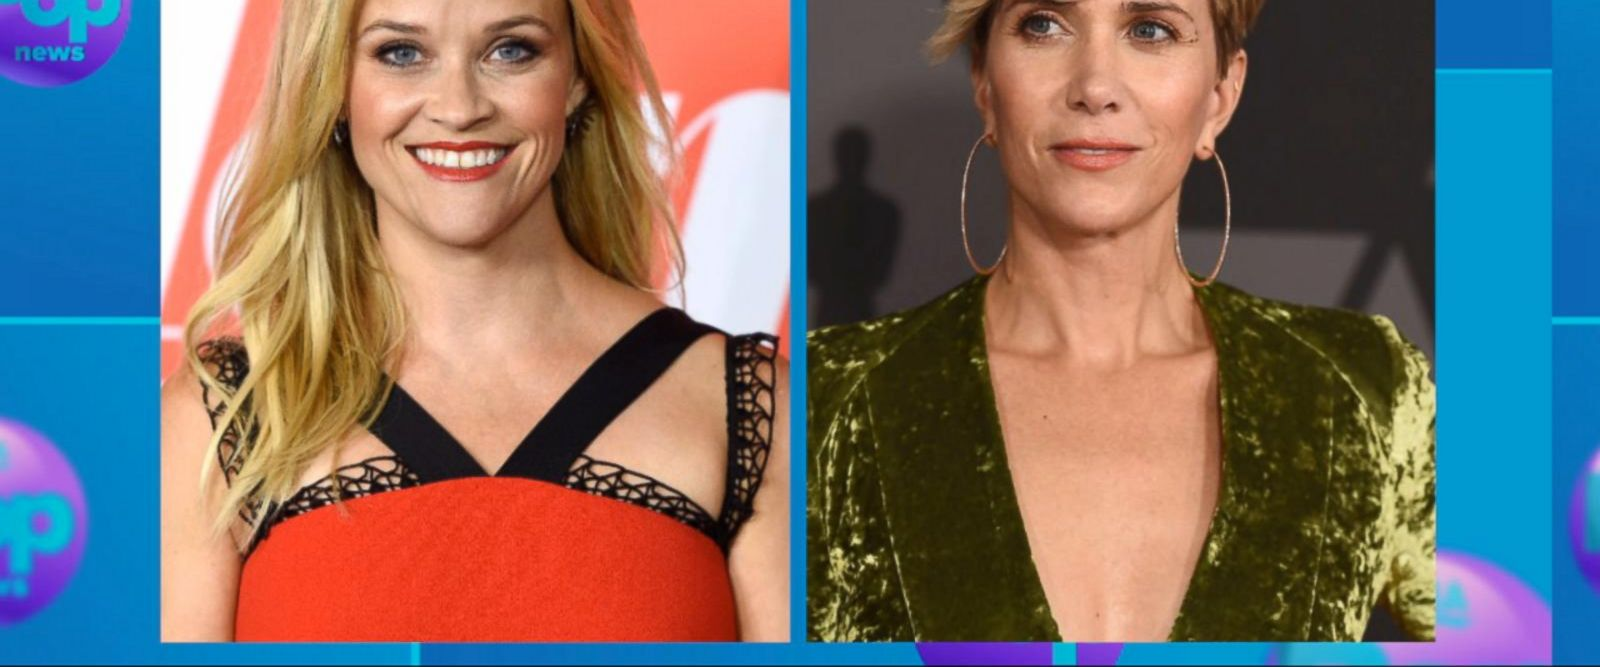 VIDEO: Kristen Wiig and Reese Witherspoon team up to create new comedy series